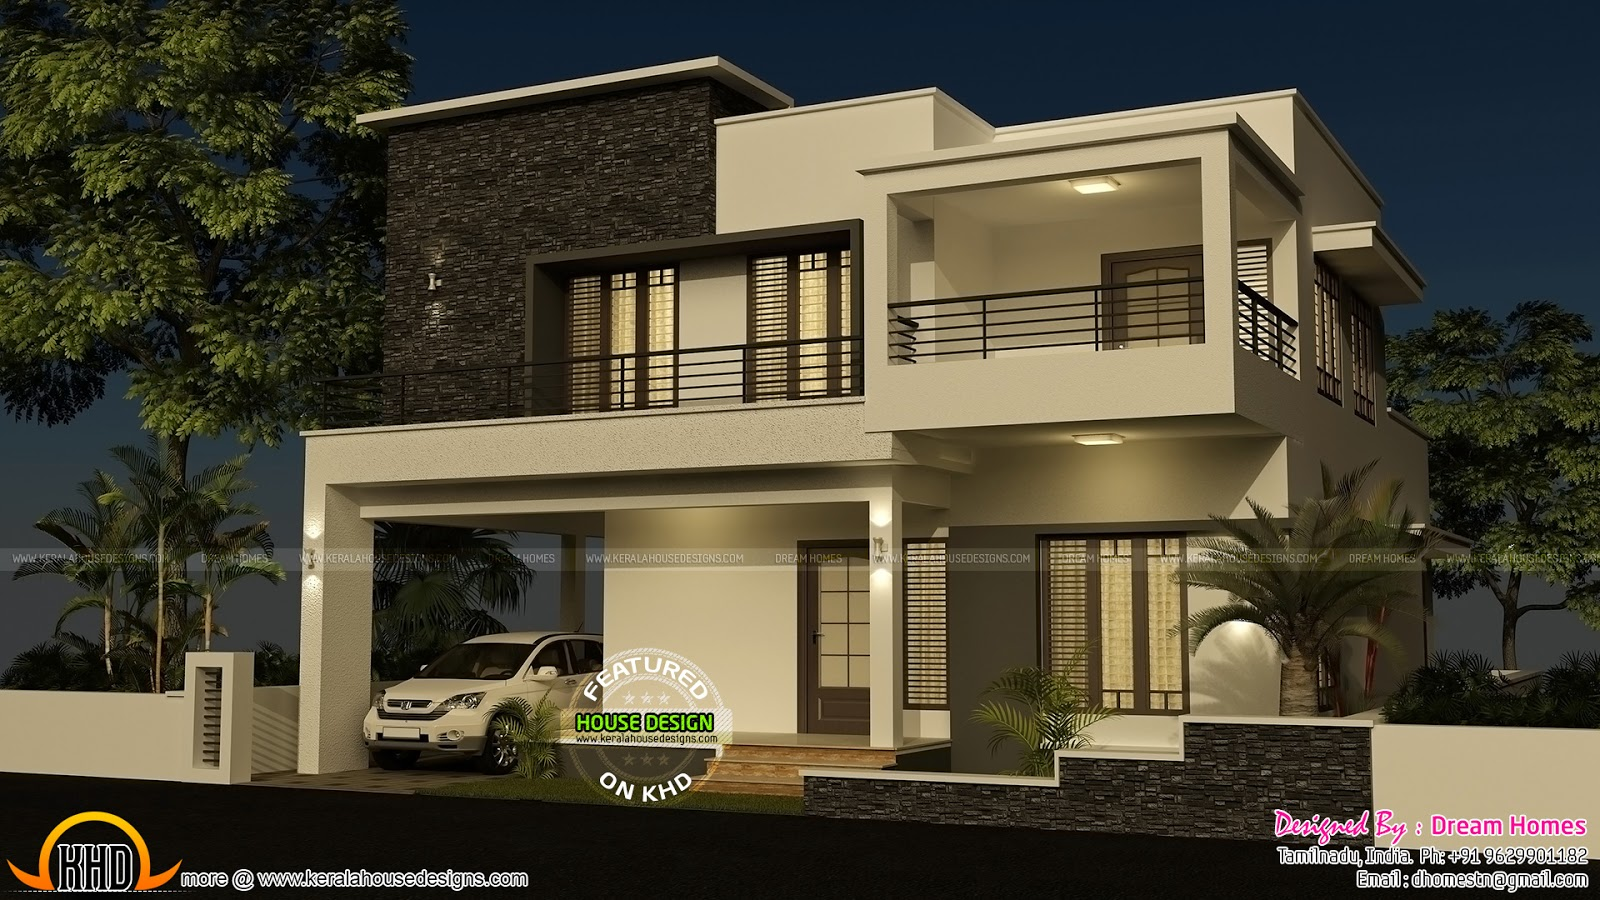 4 Bedroom Modern House With Plan Kerala Home Design And Floor Plans